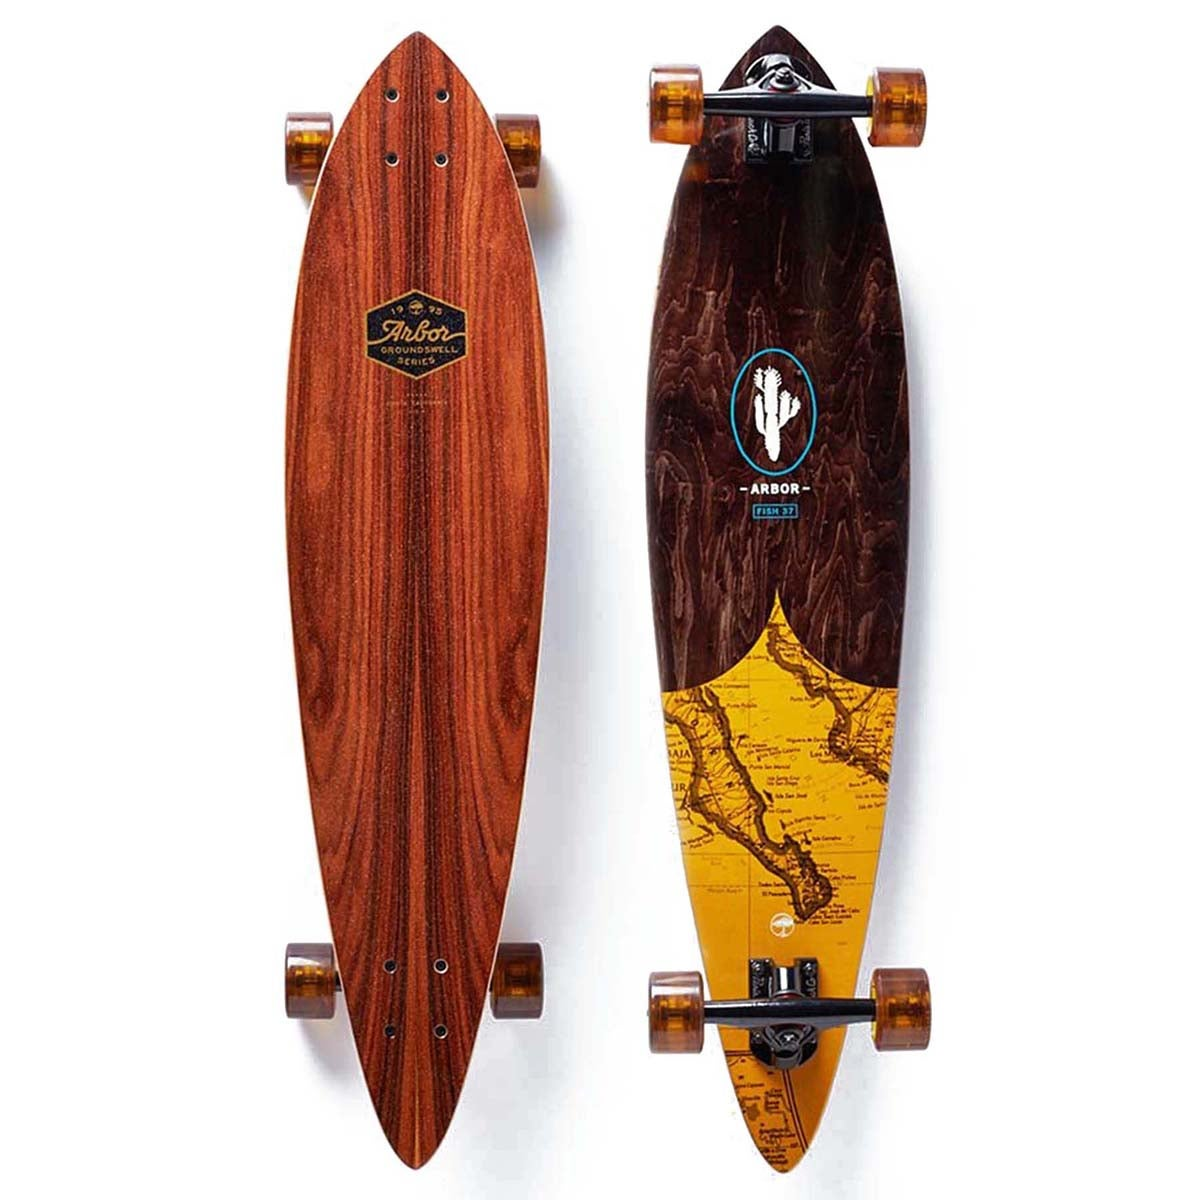 Arbor Fish Groundswell 37 Inch Longboard